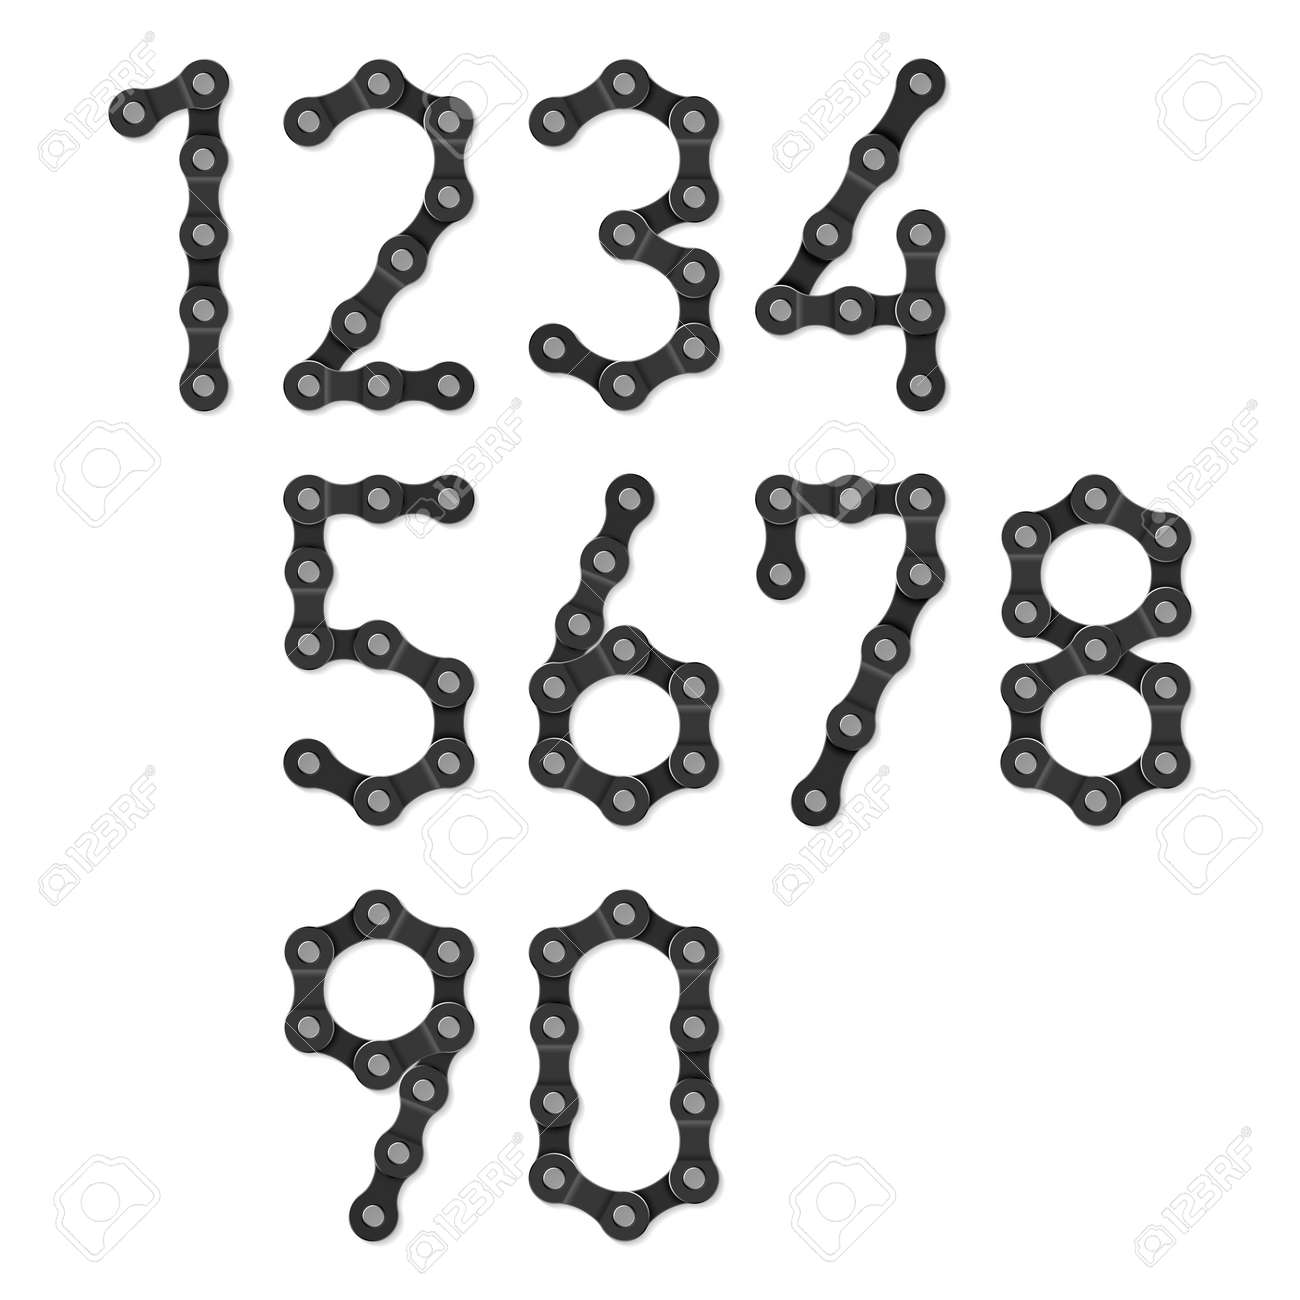 Bicycle chain numbers Stock Vector - 20183758